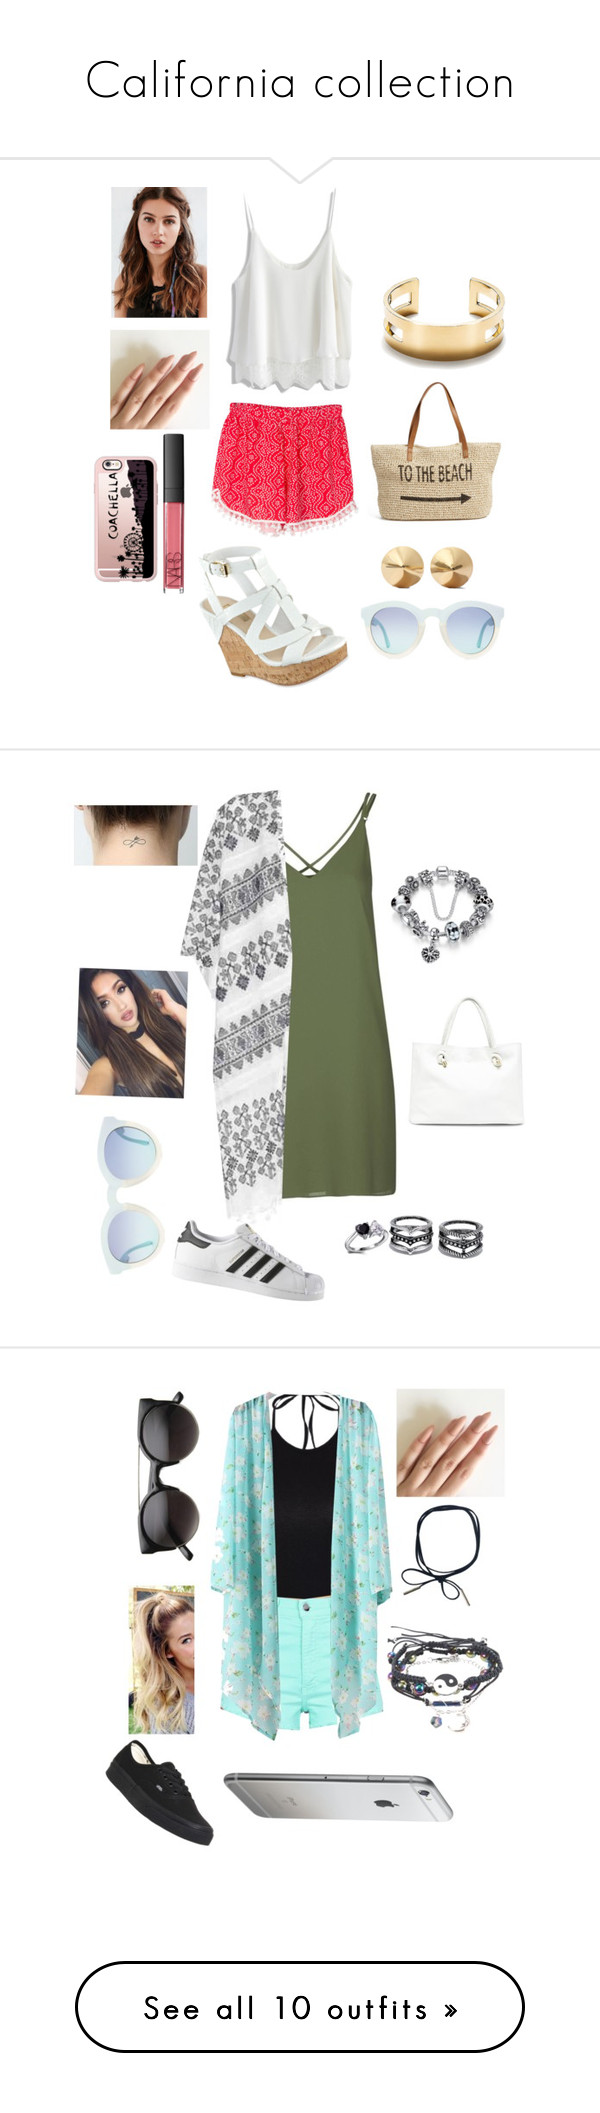 """""""California collection"""" by lovely-leah-leah ❤ liked on Polyvore featuring Chicwish, WithChic, GUESS, Straw Studios, Tiffany & Co., Eddie Borgo, REGALROSE, NARS Cosmetics, Casetify and art"""